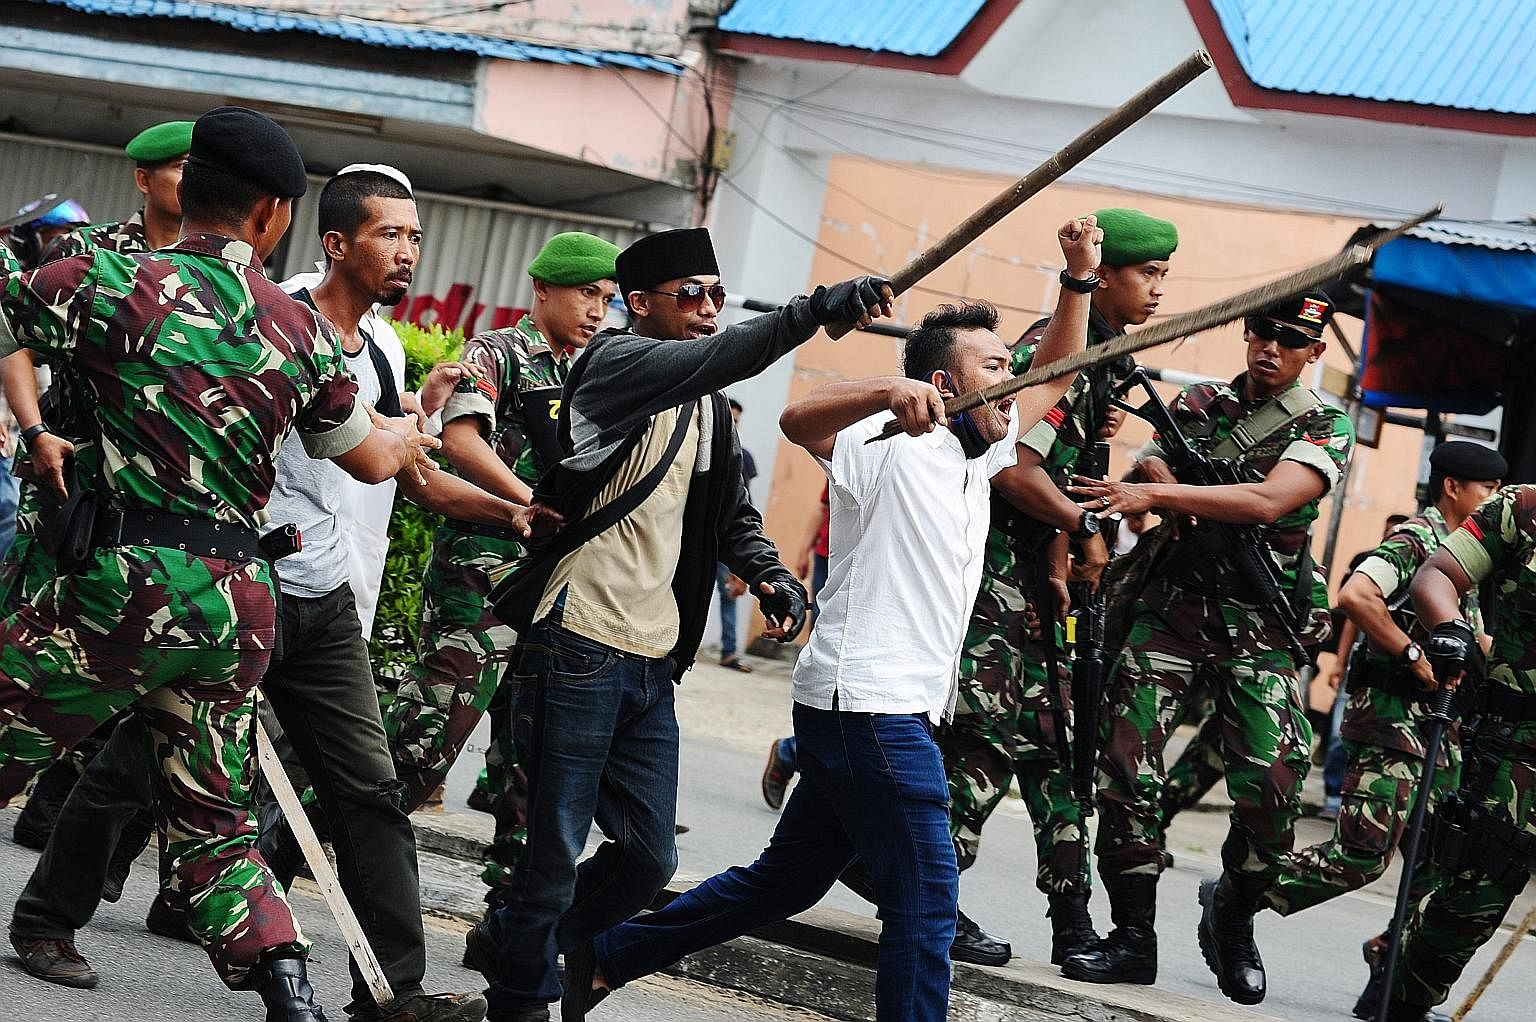 Indonesian hardline Muslim activists being restrained by military personnel as they shouted slogans during a local tribal festival in Pontianak, West Kalimantan province, on May 20. The divisive gubernatorial Jakarta election has brought up the quest